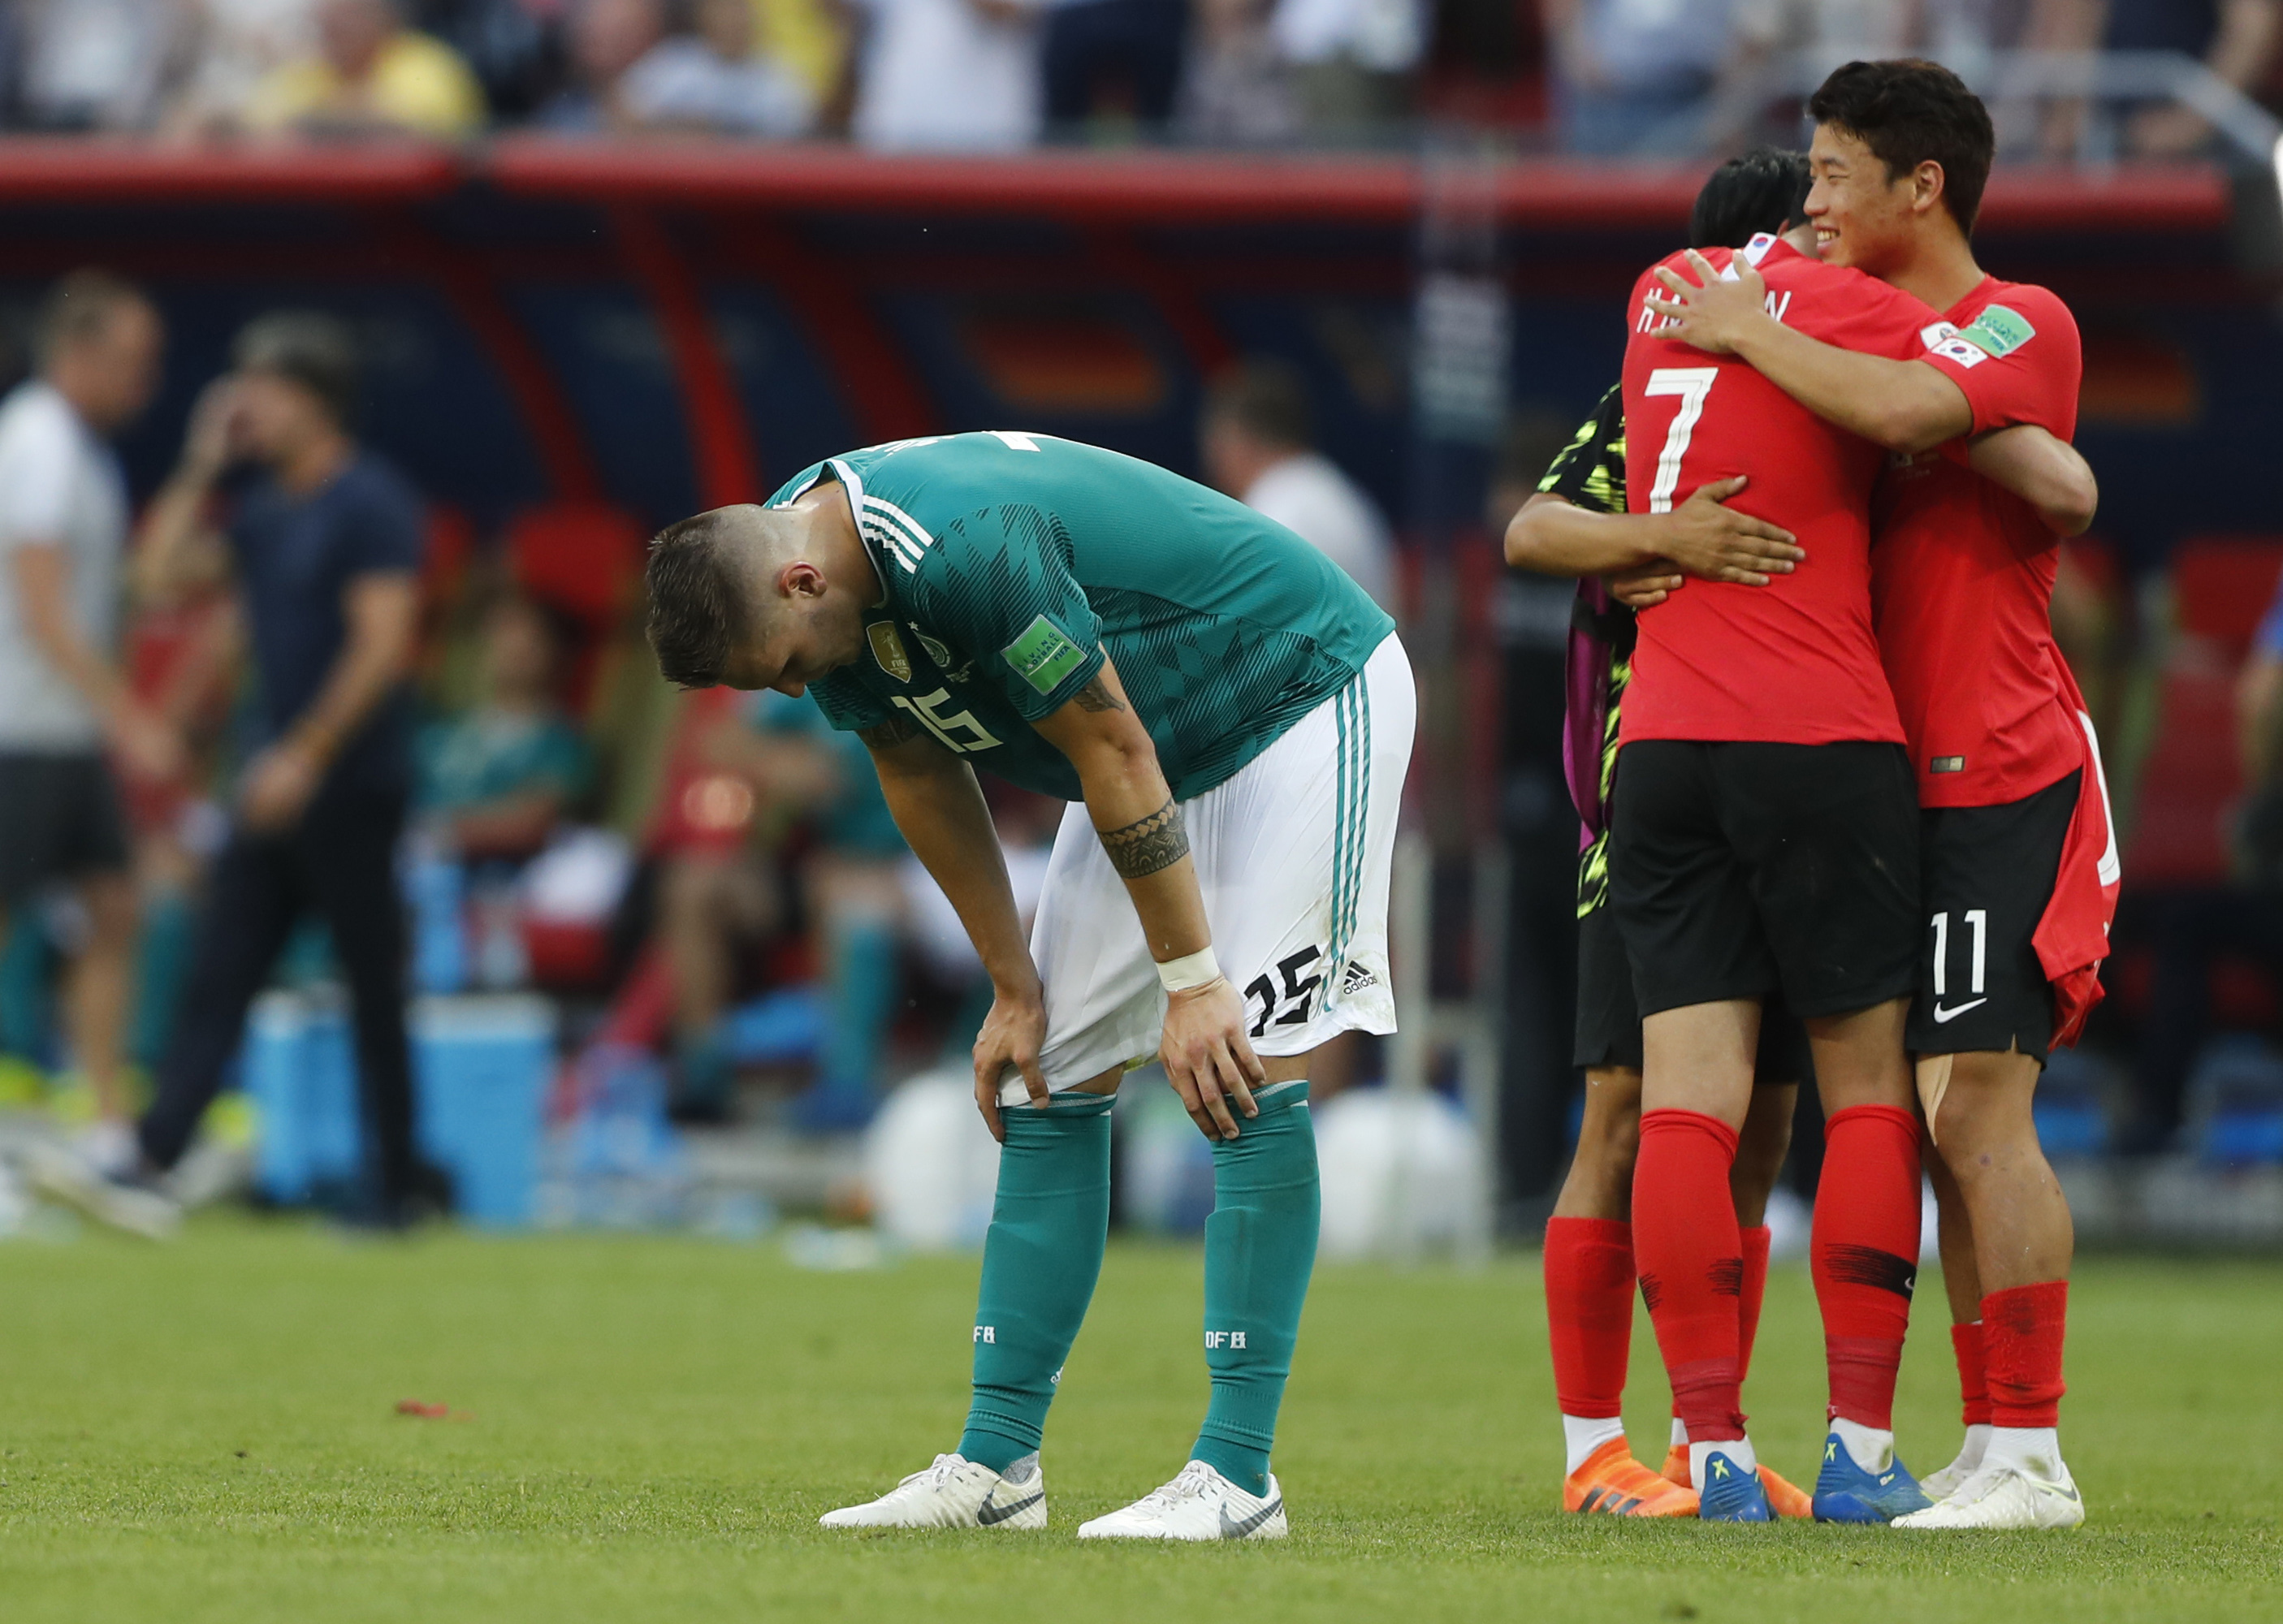 Germany's Niklas Suele, left, is dejected as South Korea's Son Heung-min, right, celebrates after the group F match between South Korea and Germany, at the 2018 soccer World Cup in the Kazan Arena in Kazan, Russia, Wednesday, June 27, 2018. South Korea won the match 2-0.